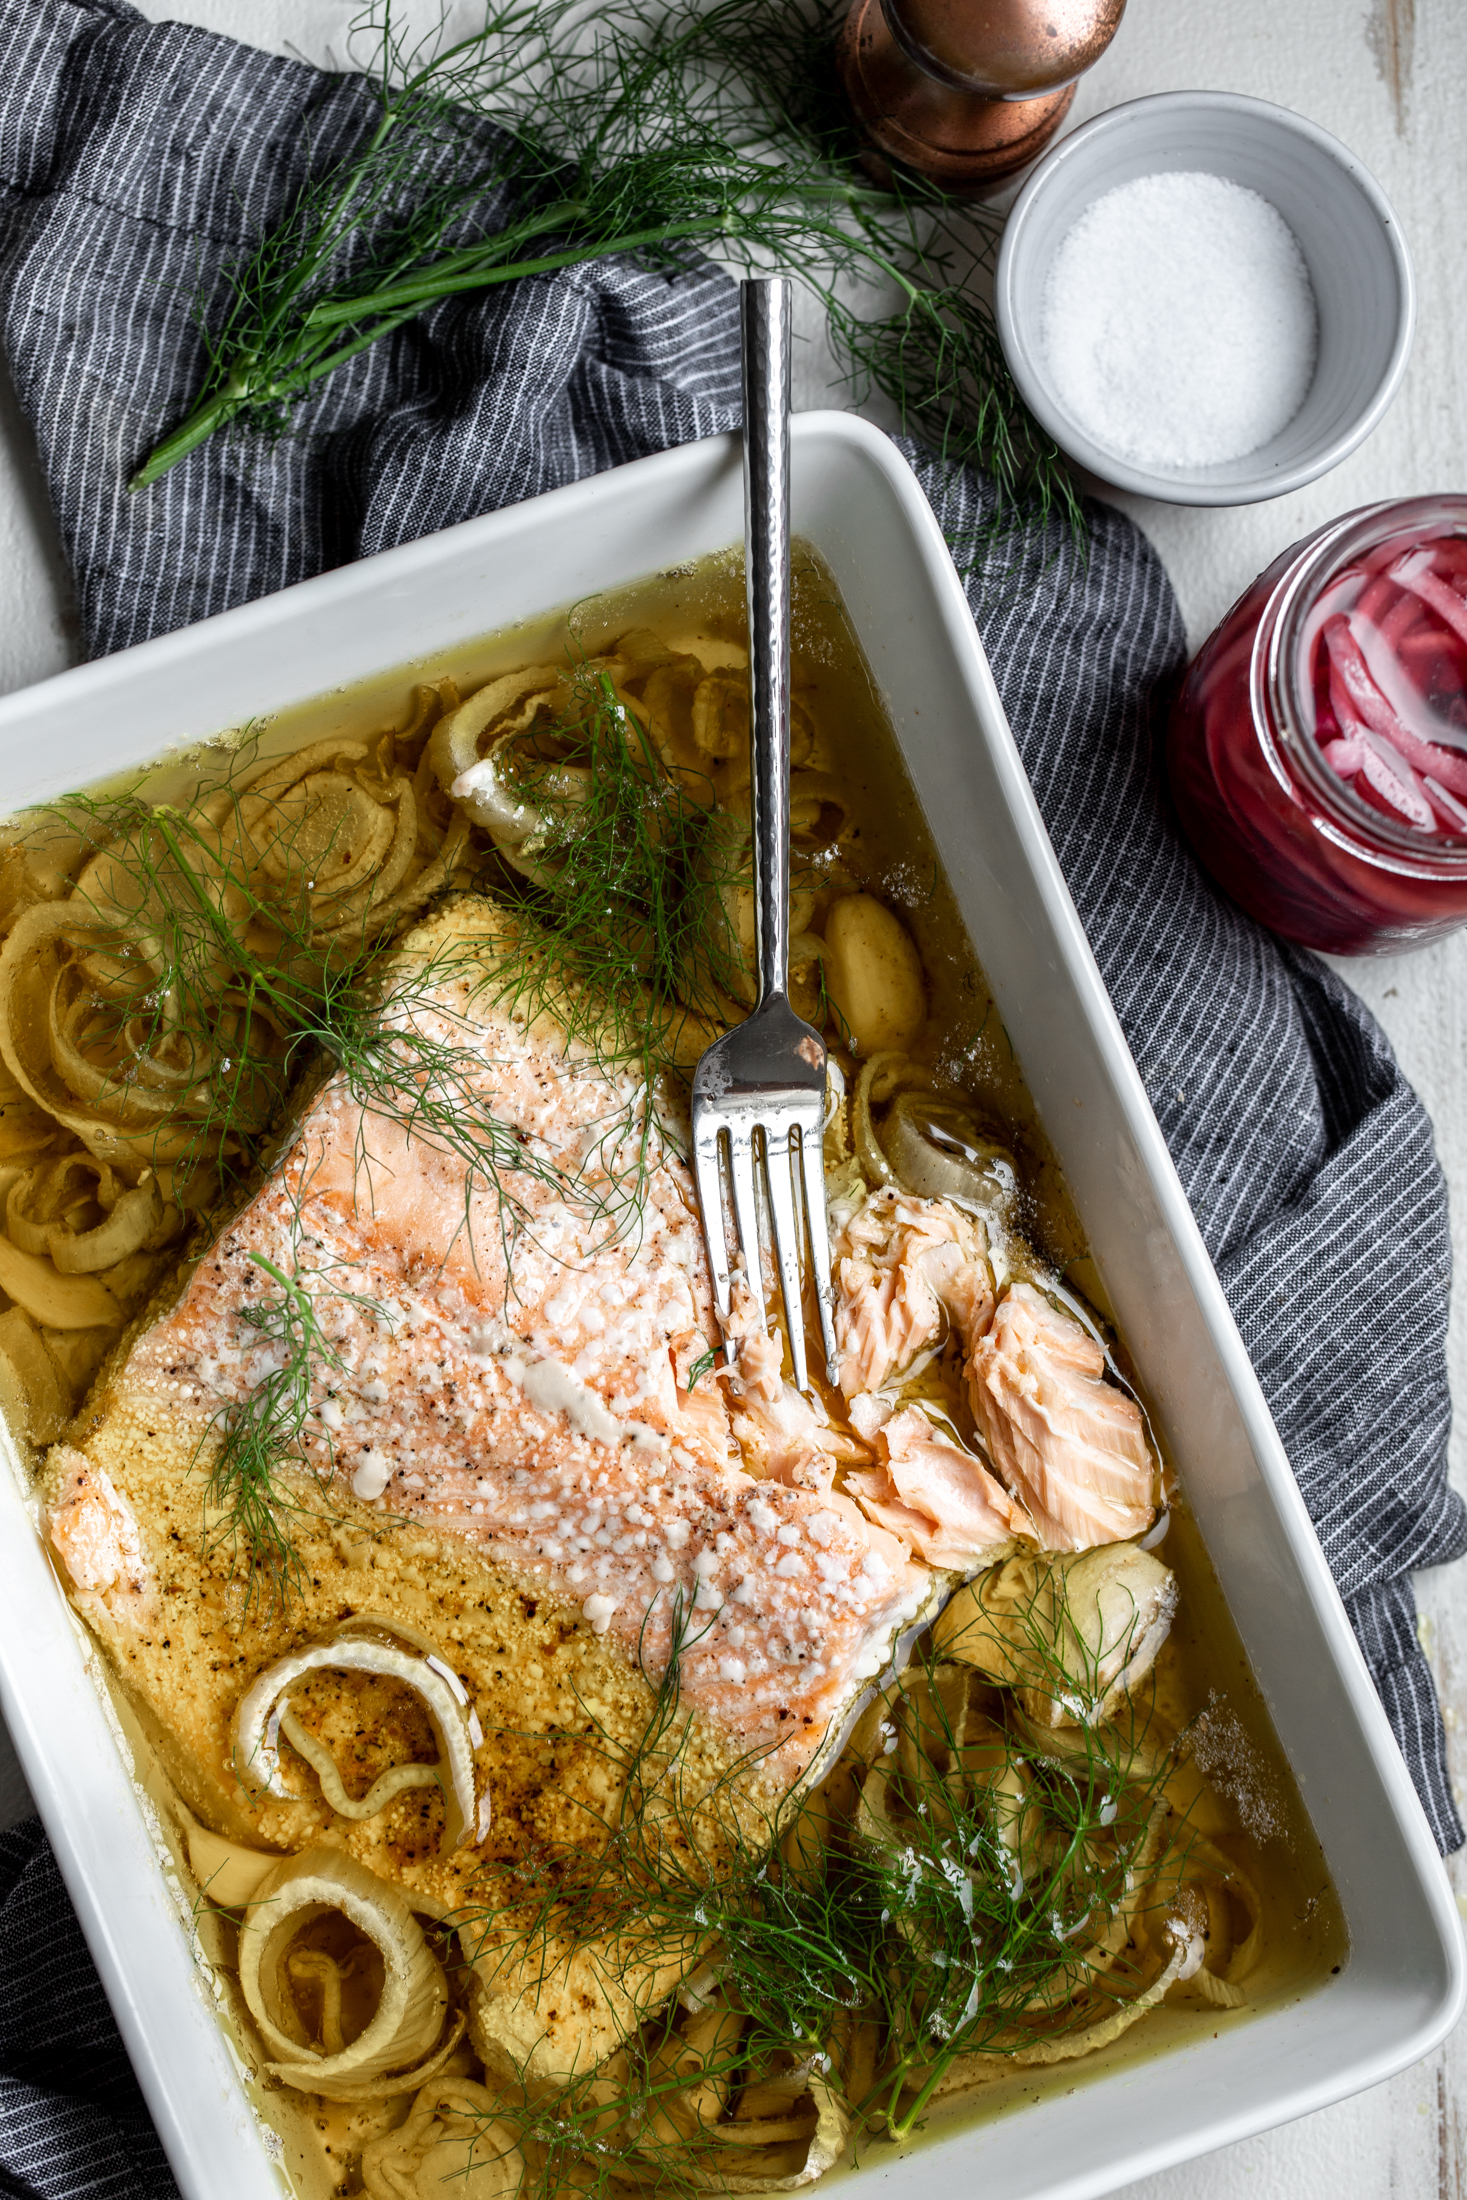 Olive Oil Slow-Poached Salmon with Fennel and Lemon Arugula Herb Salad-10.jpg